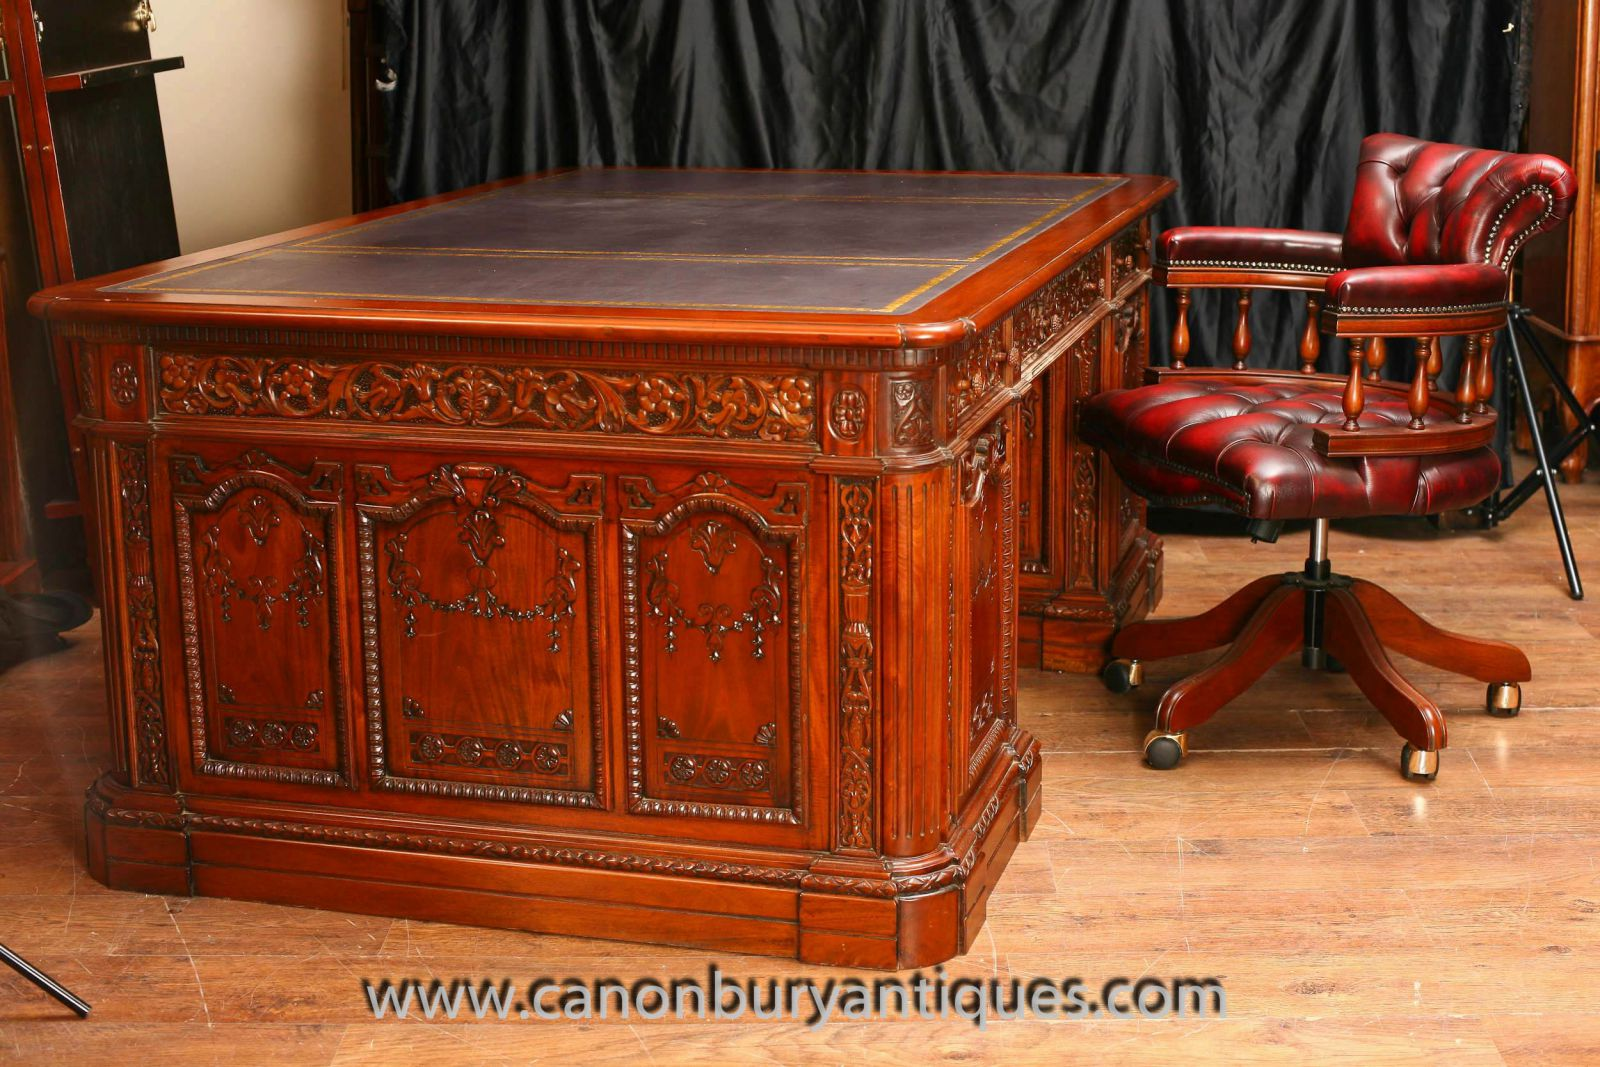 American Presidents Desk Oval Office White House www_canonburyantiques_com-2-2